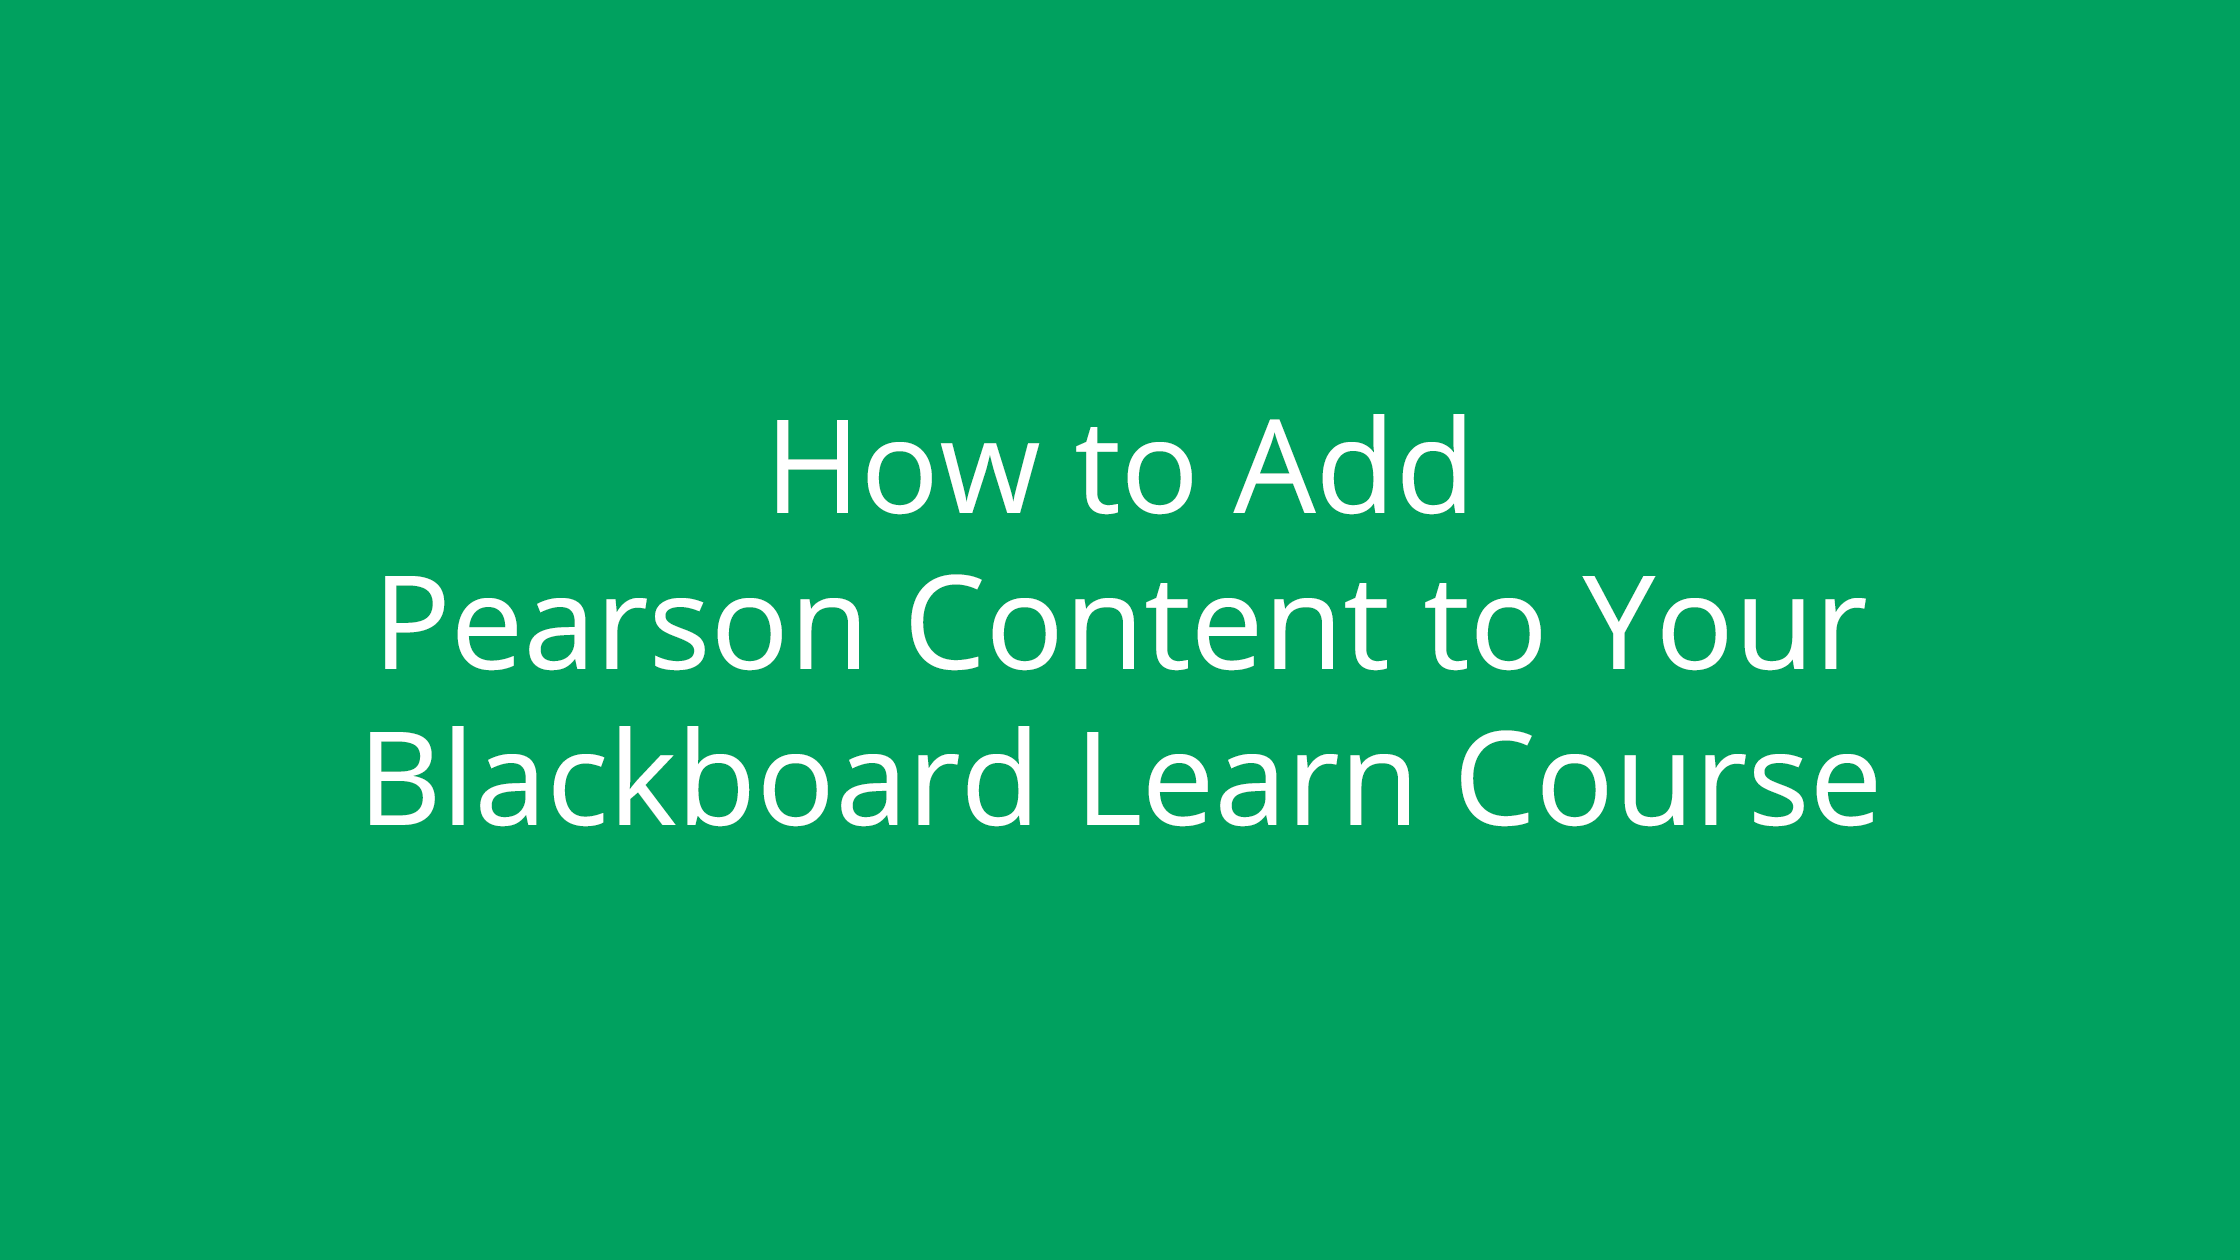 How To Add Pearson Content to your Blackboard Learn Course